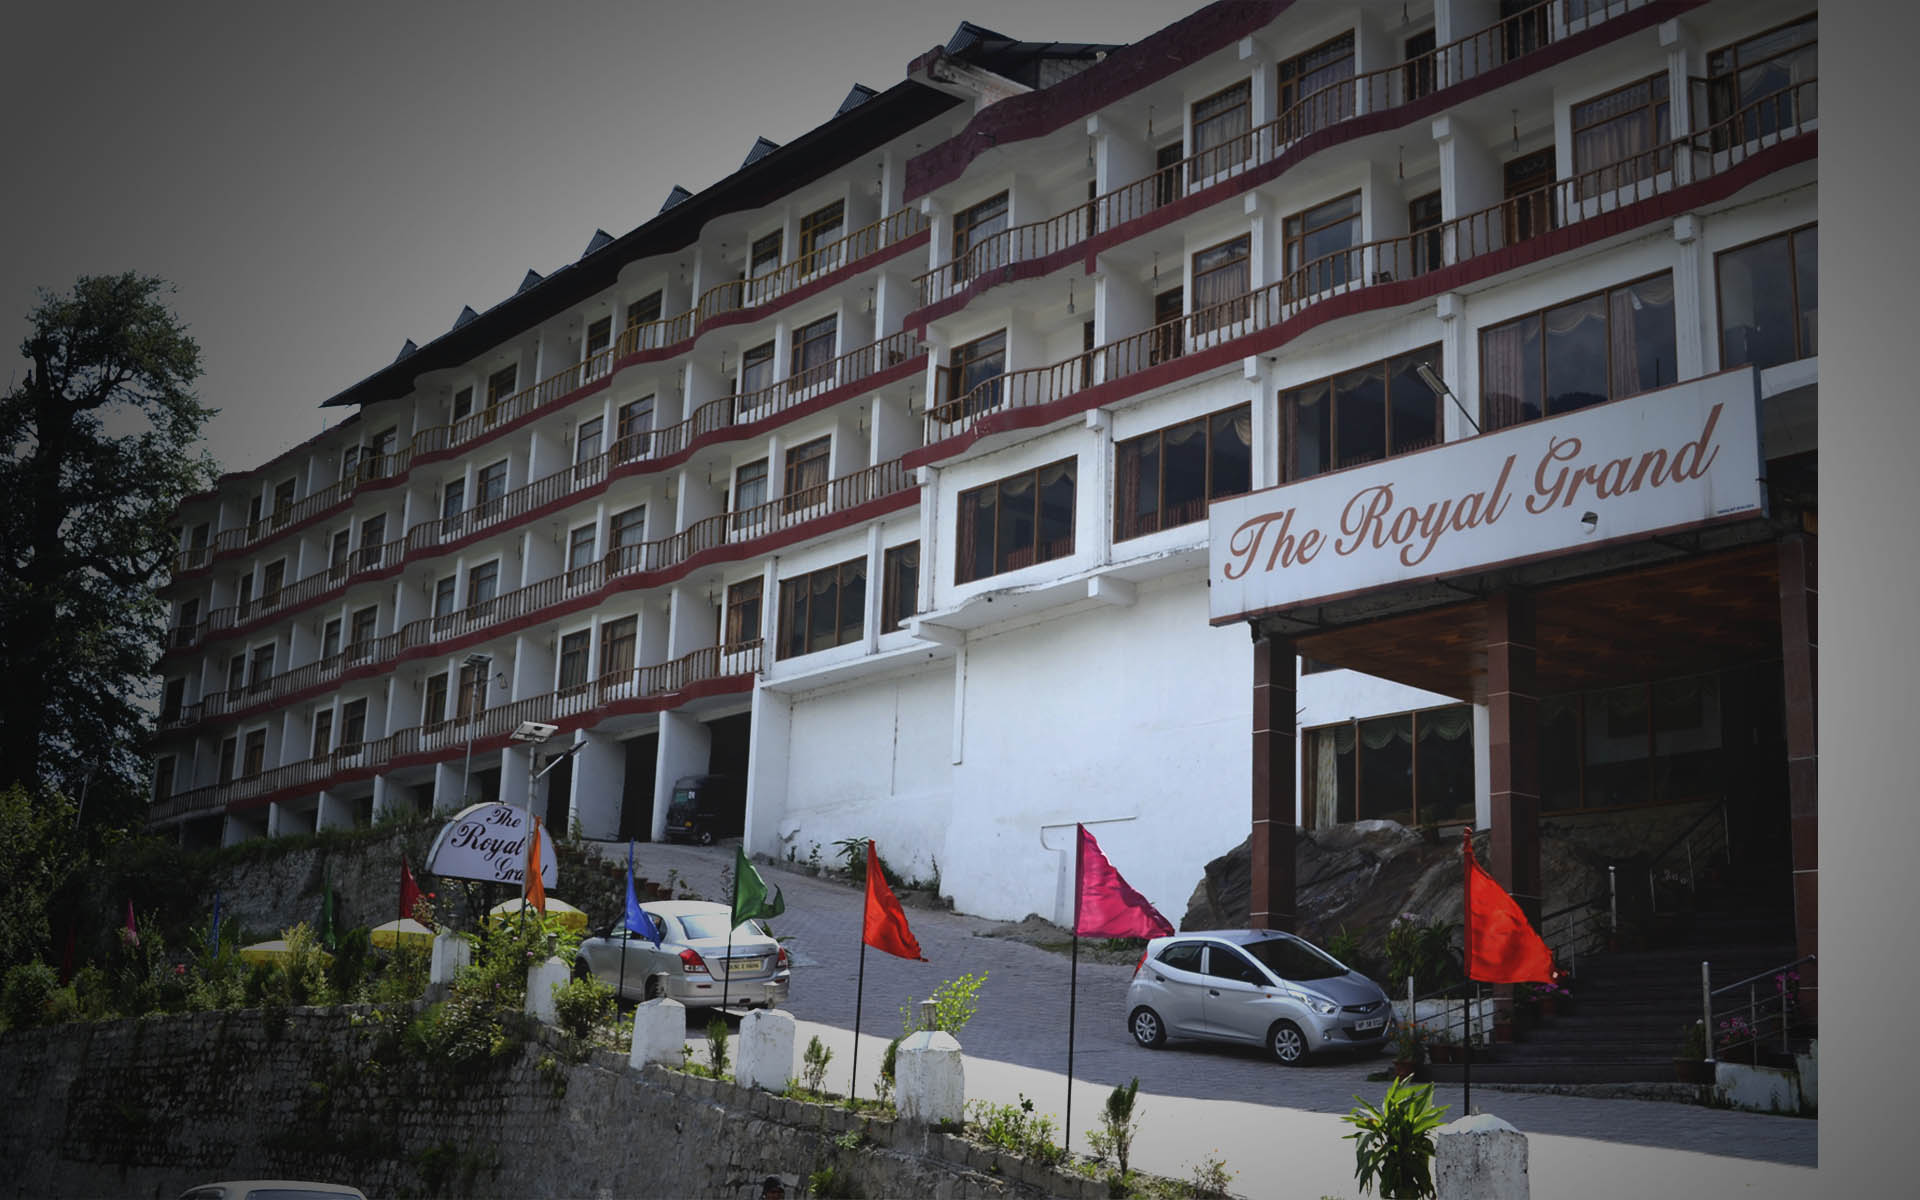 The_royal_grand_manali.jpg